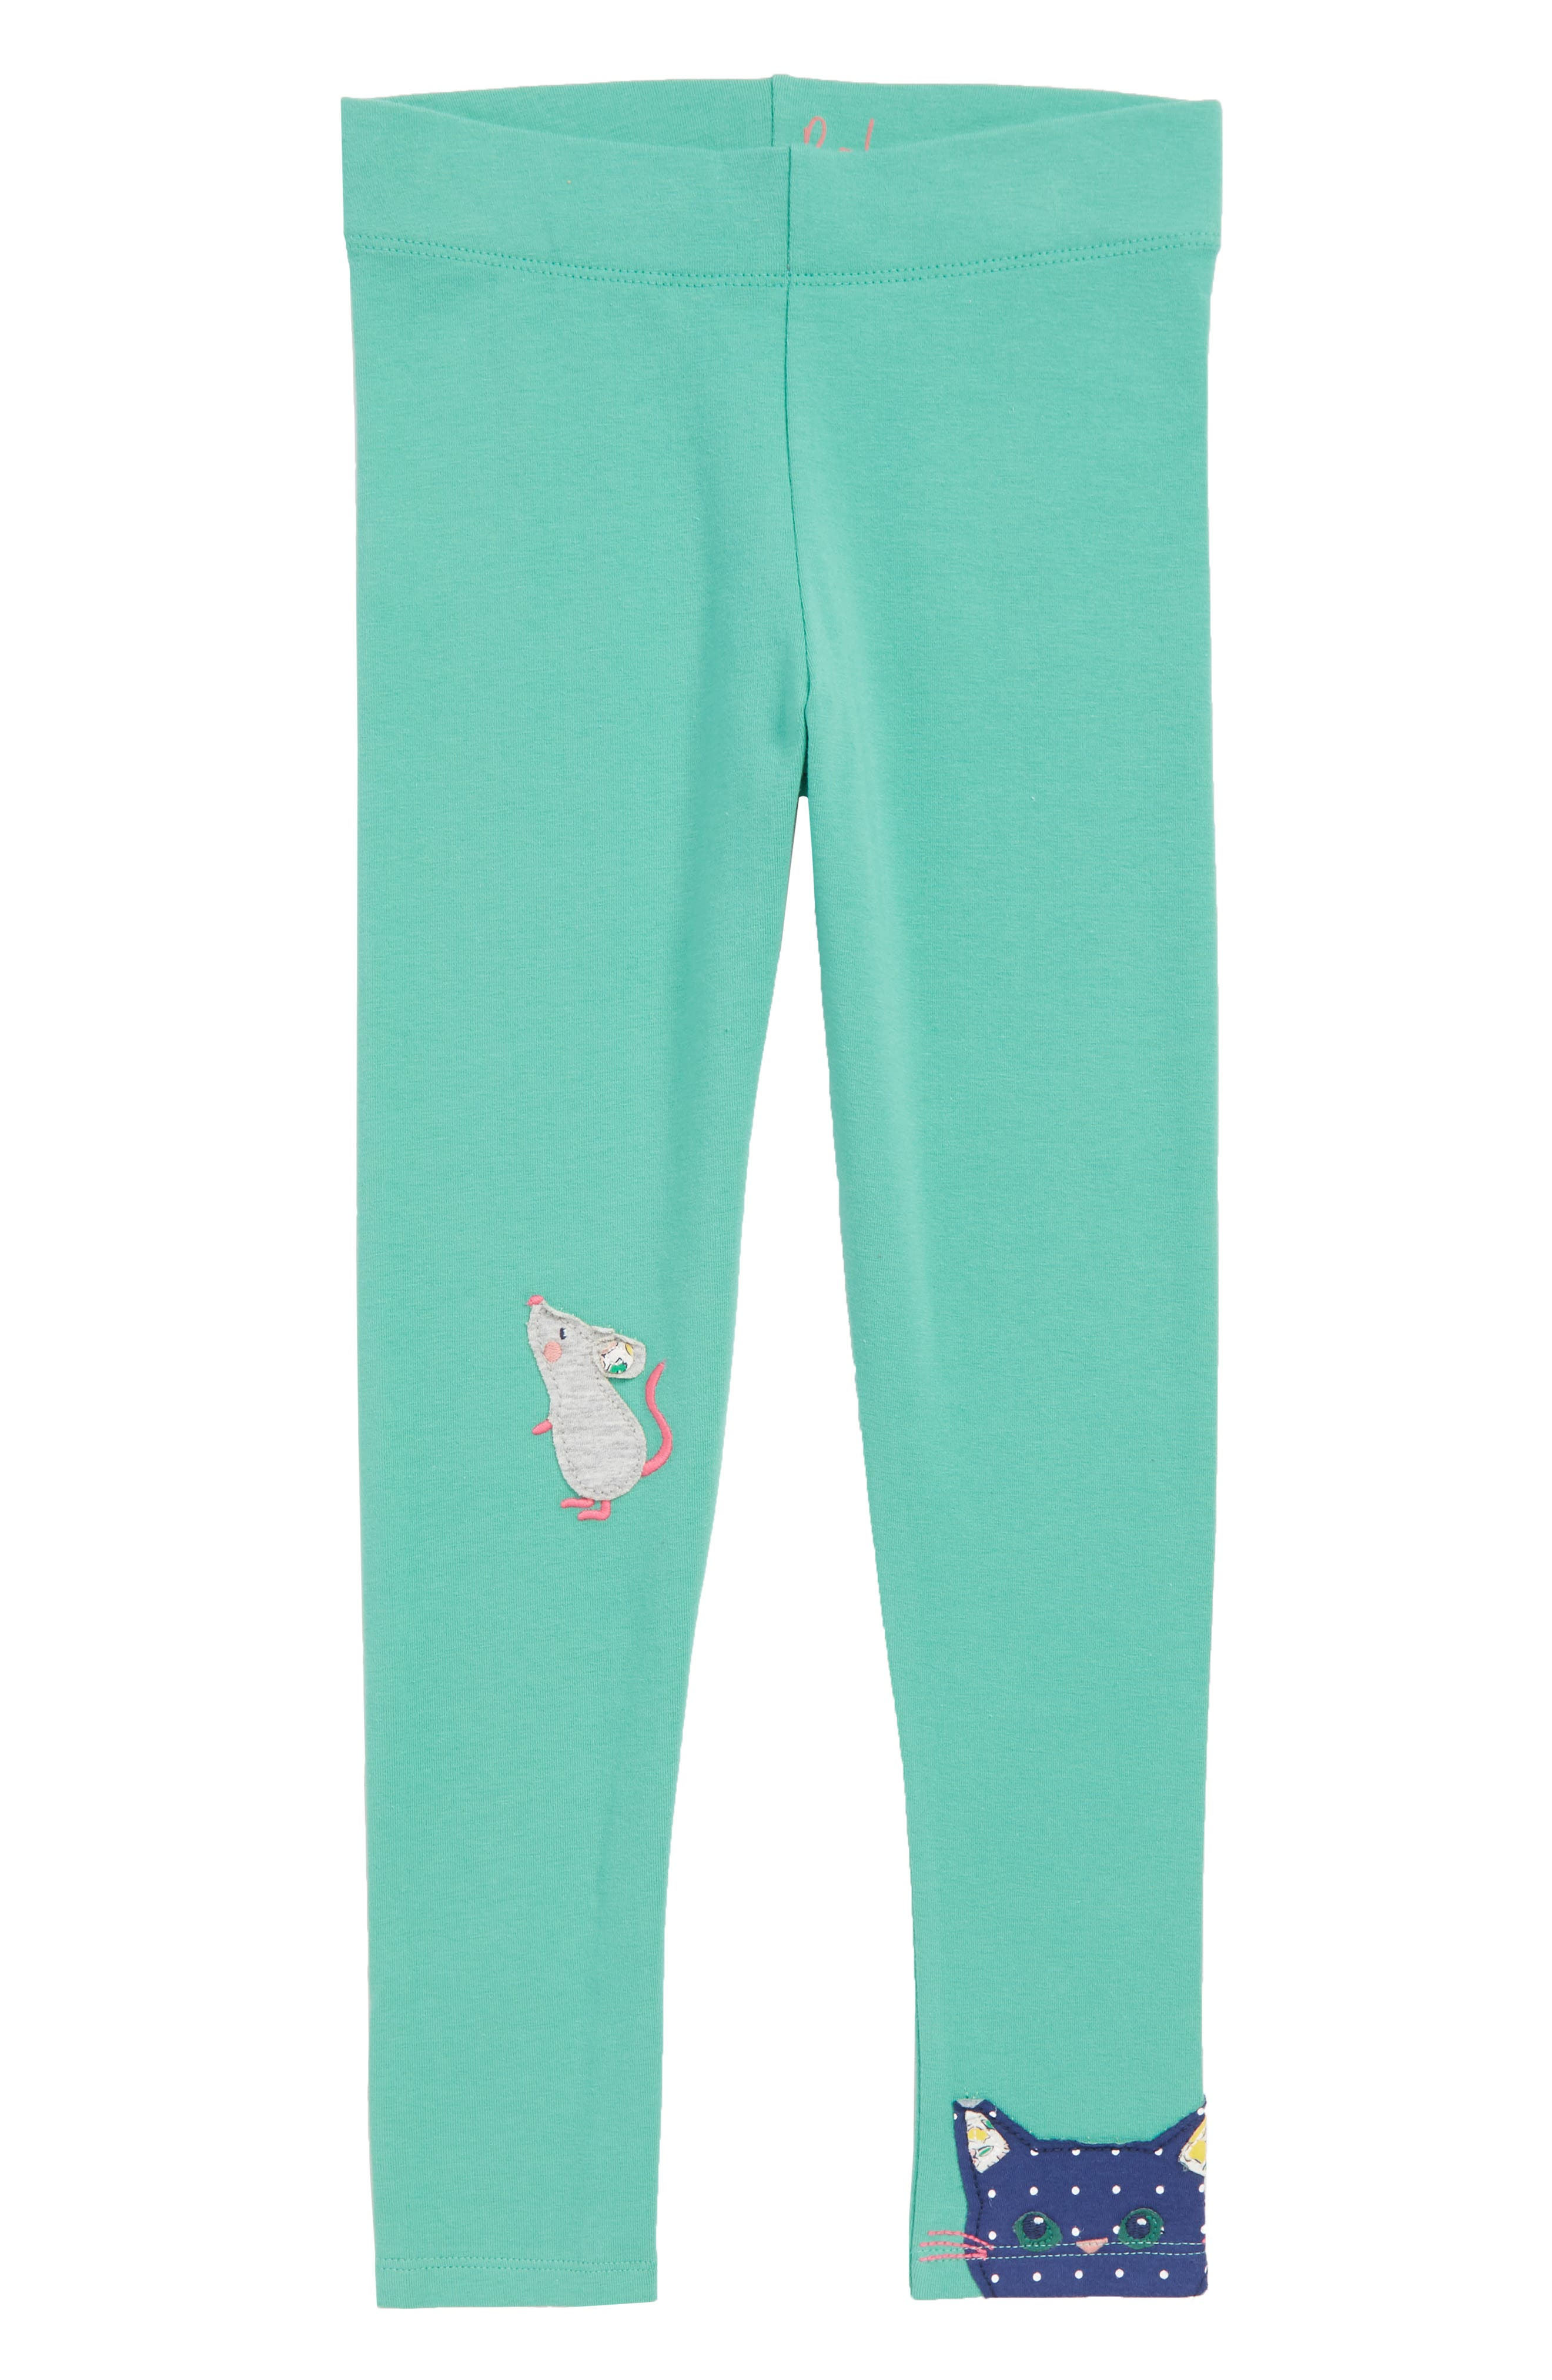 Appliqué Leggings,                             Main thumbnail 1, color,                             JUNGLE GREEN CAT AND MOUSE